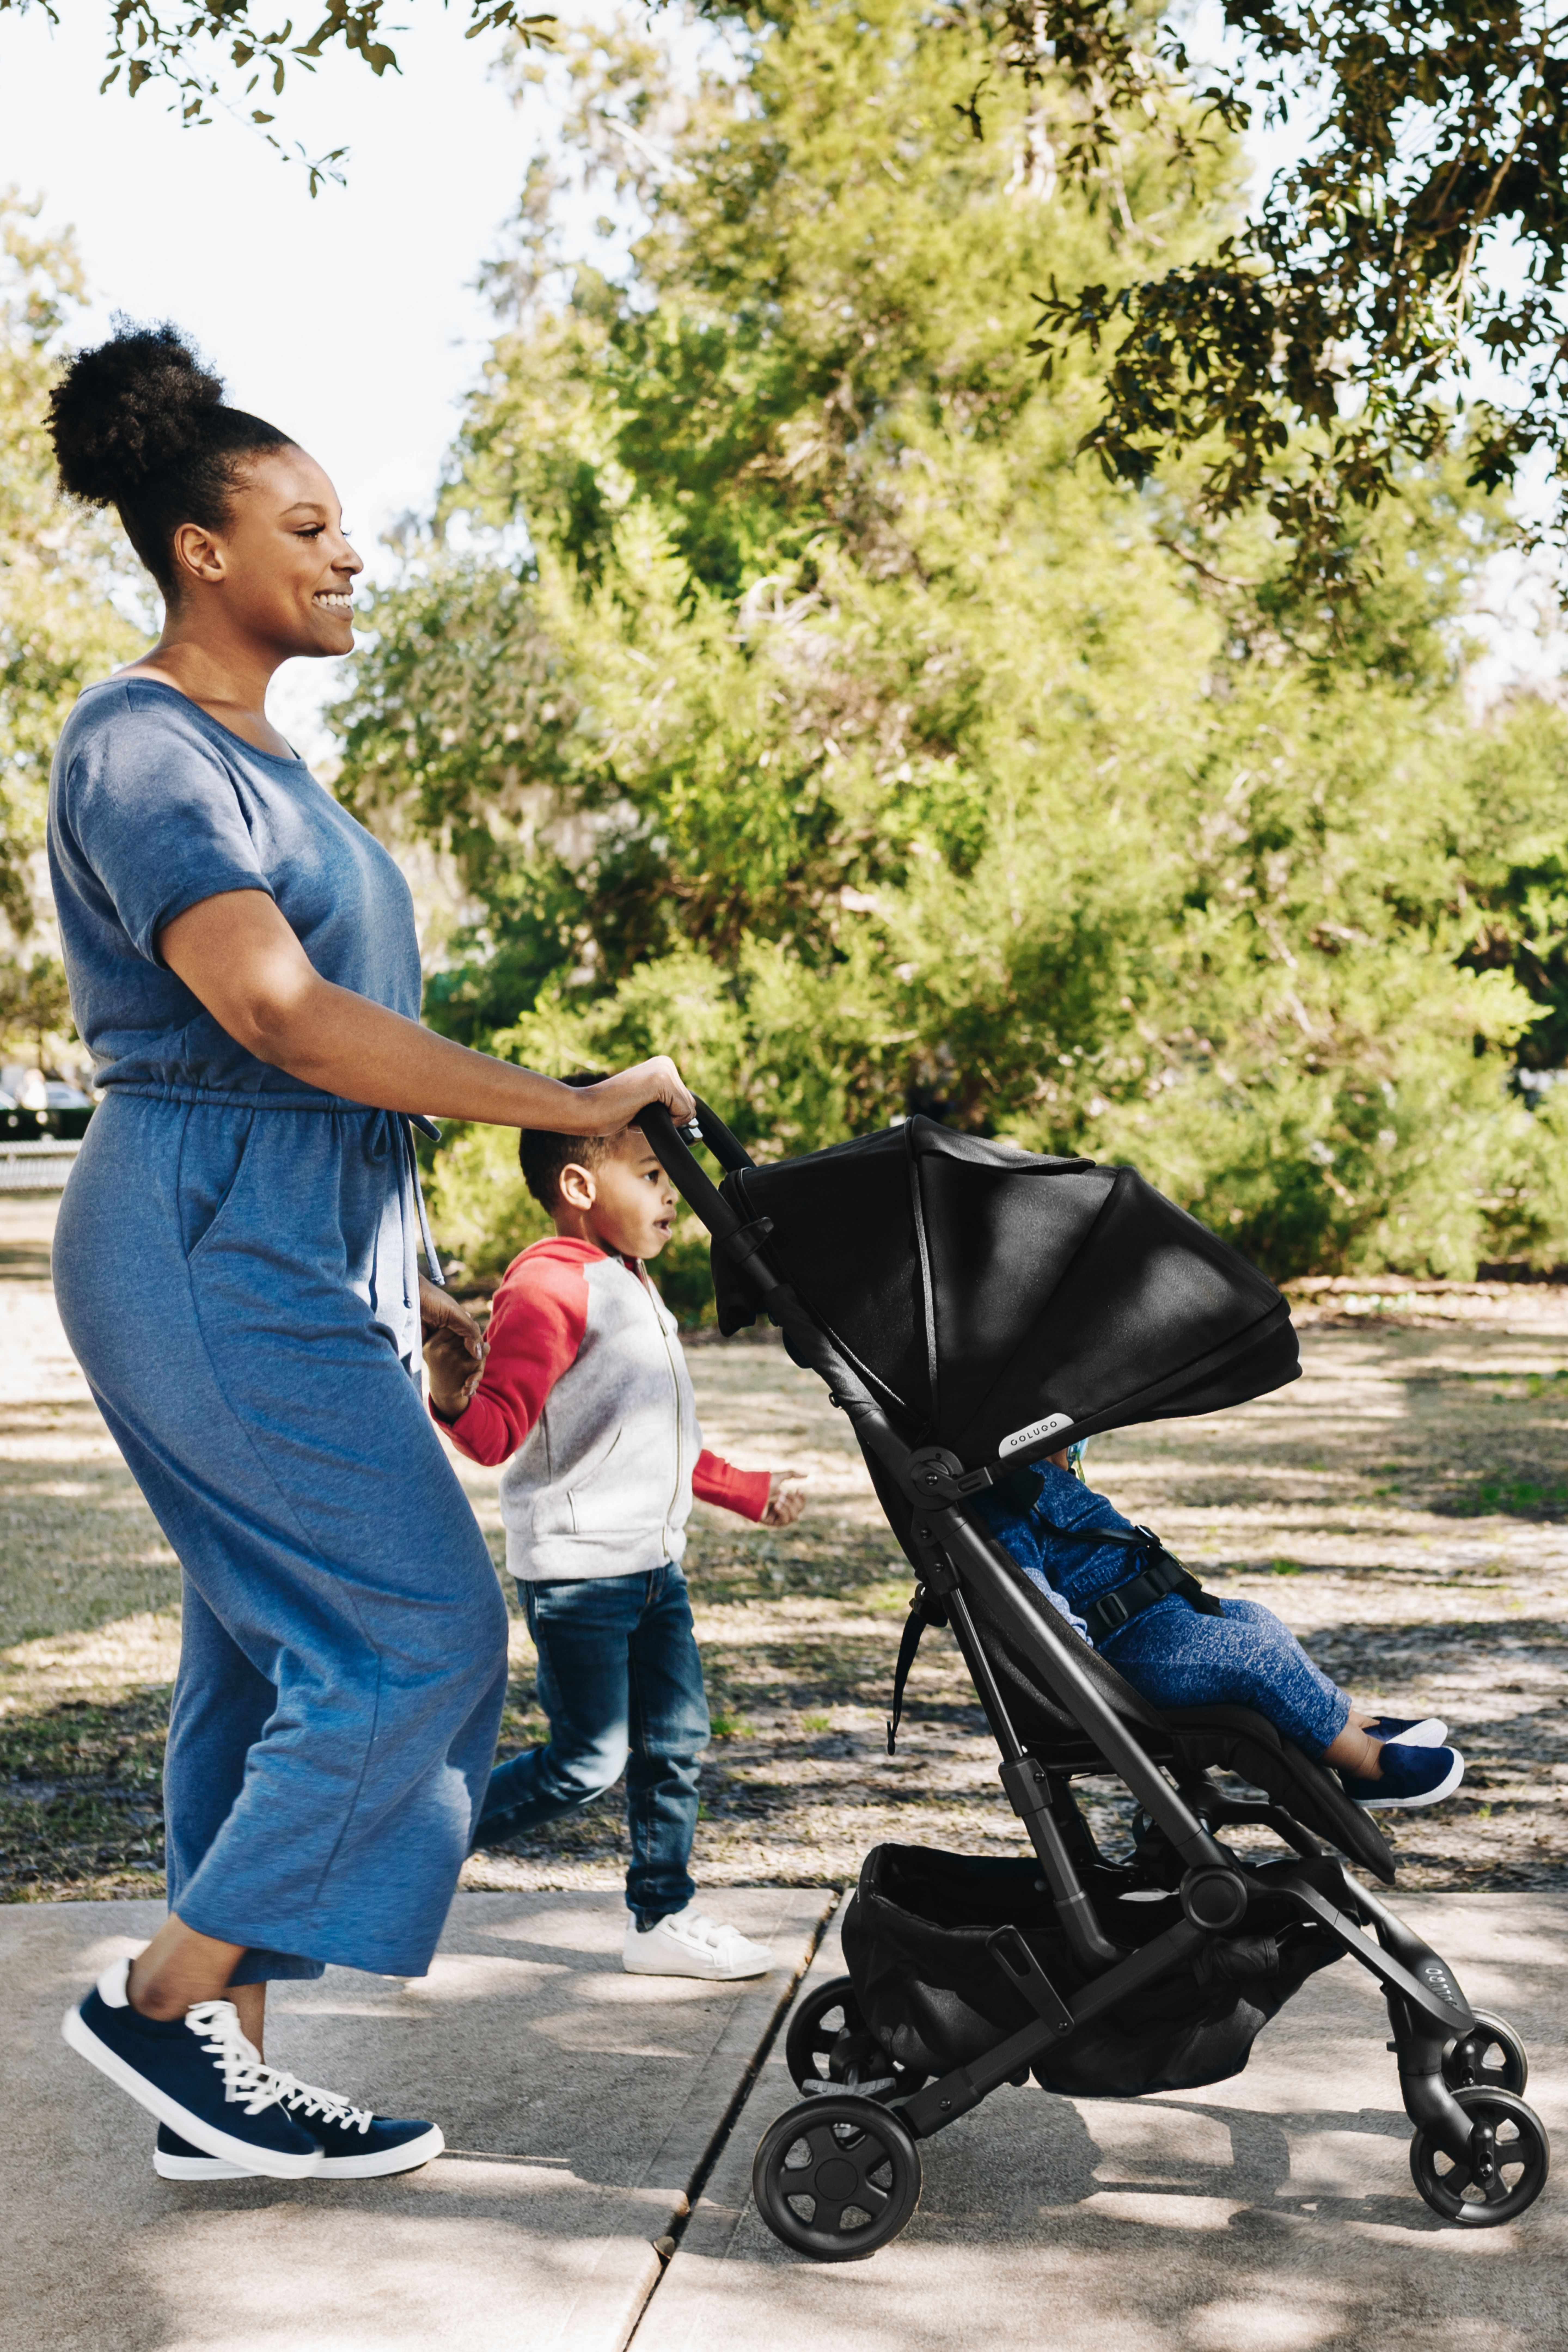 The Compact Stroller image by Colugo Compact strollers